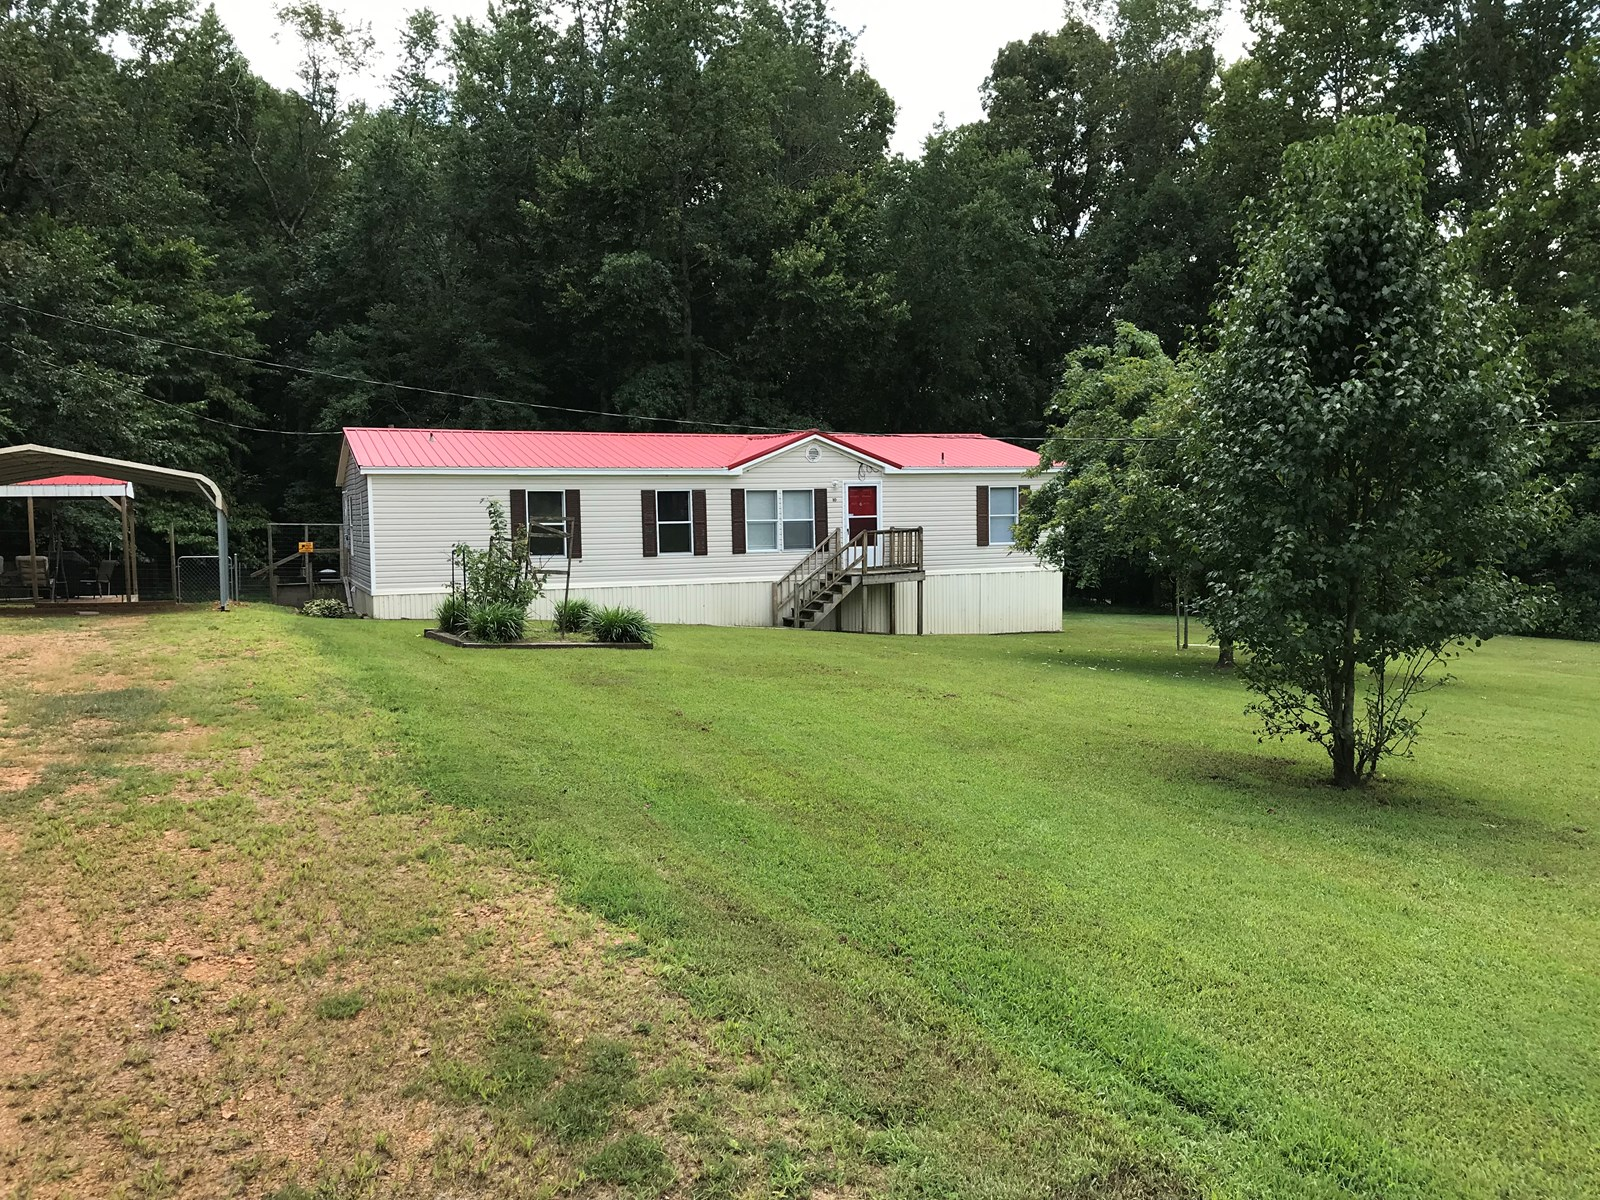 PARIS TENNESSEE HOME FOR SALE, NEAR KY LAKE,